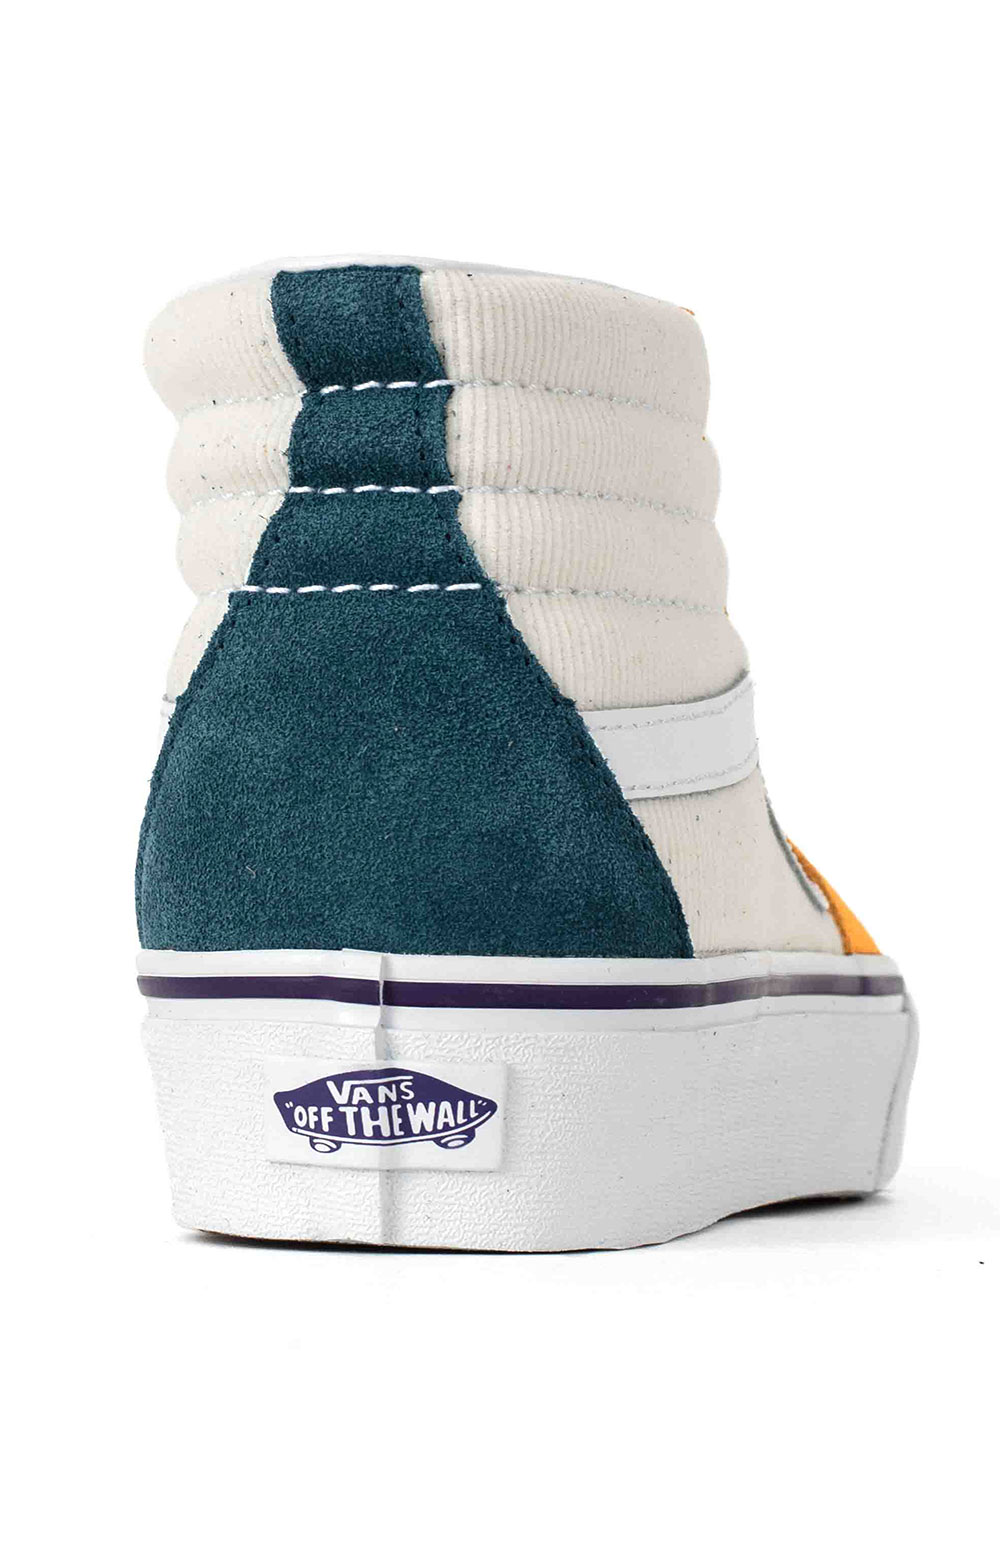 (TKNWVY) Mini Cord SK8-Hi Platform 2 Shoes - Multi/True White  5